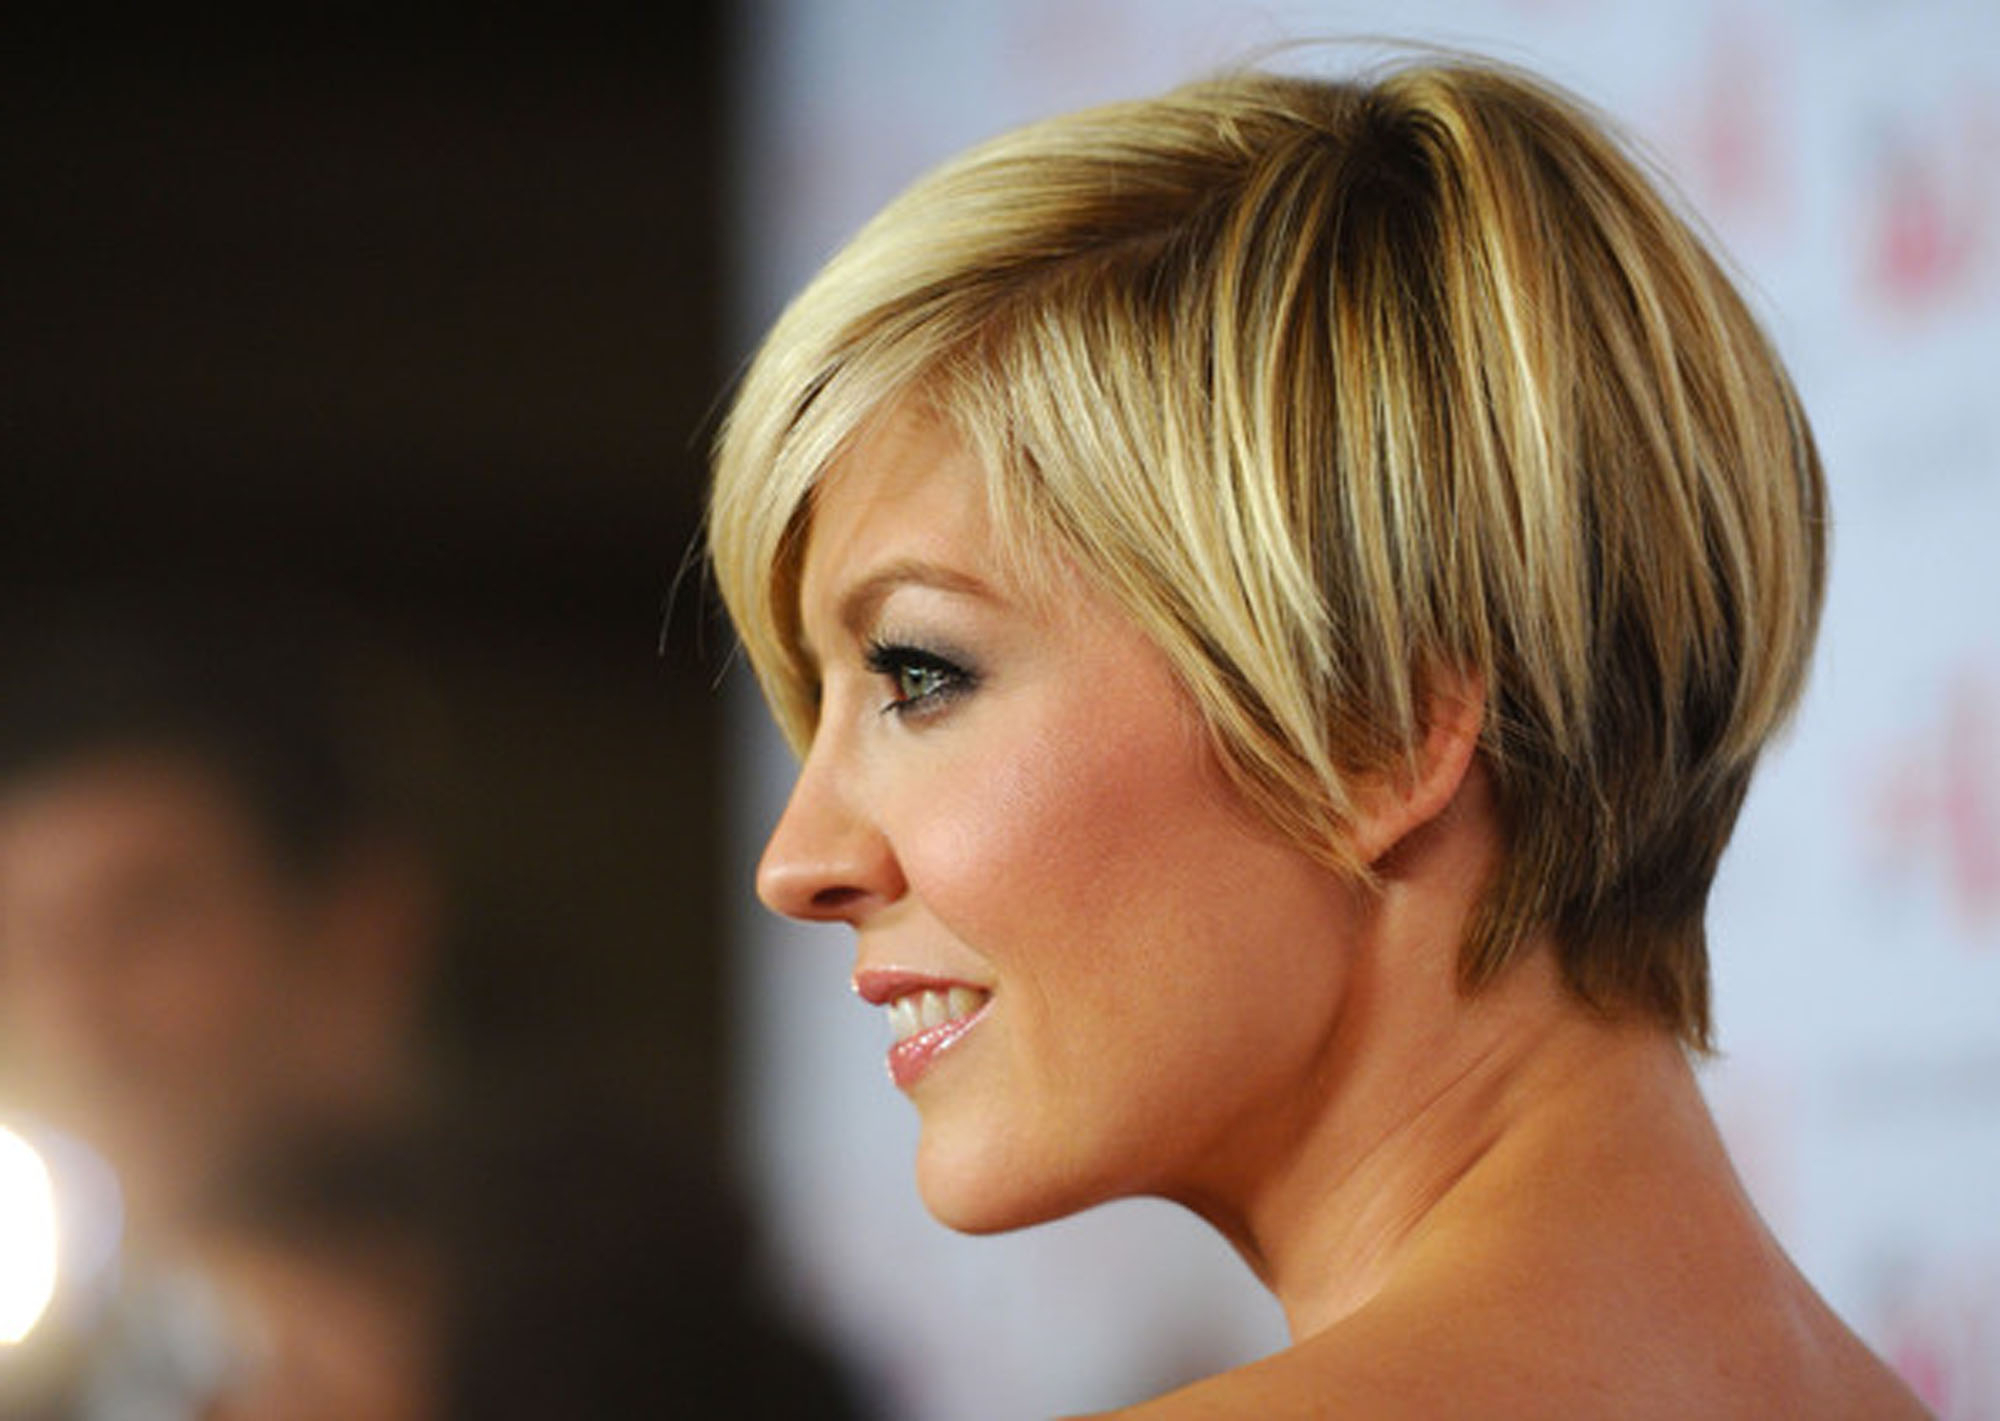 28 Best Hairstyles For Short Hair Inside Women Short To Medium Hairstyles (View 19 of 25)